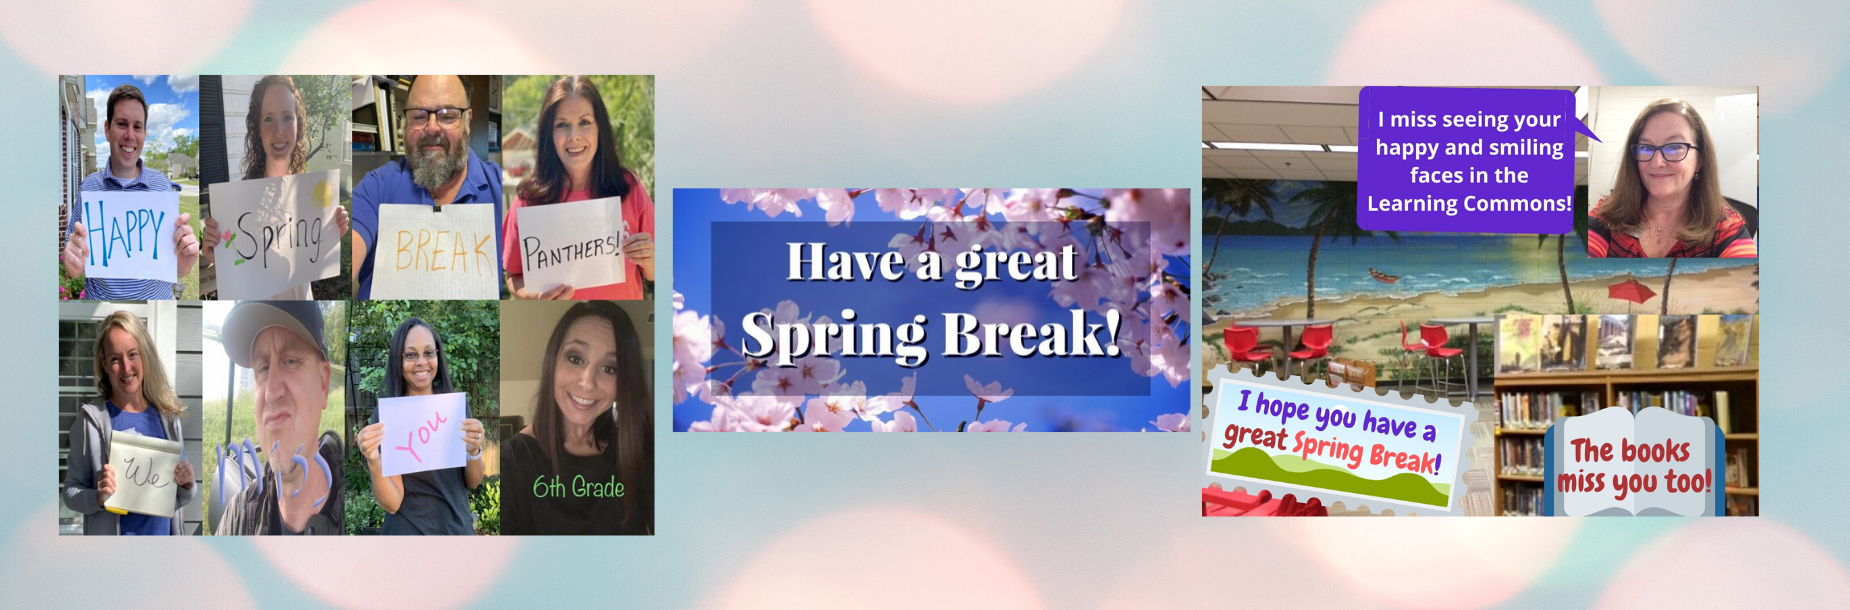 Happy spring break pictures and well wishes